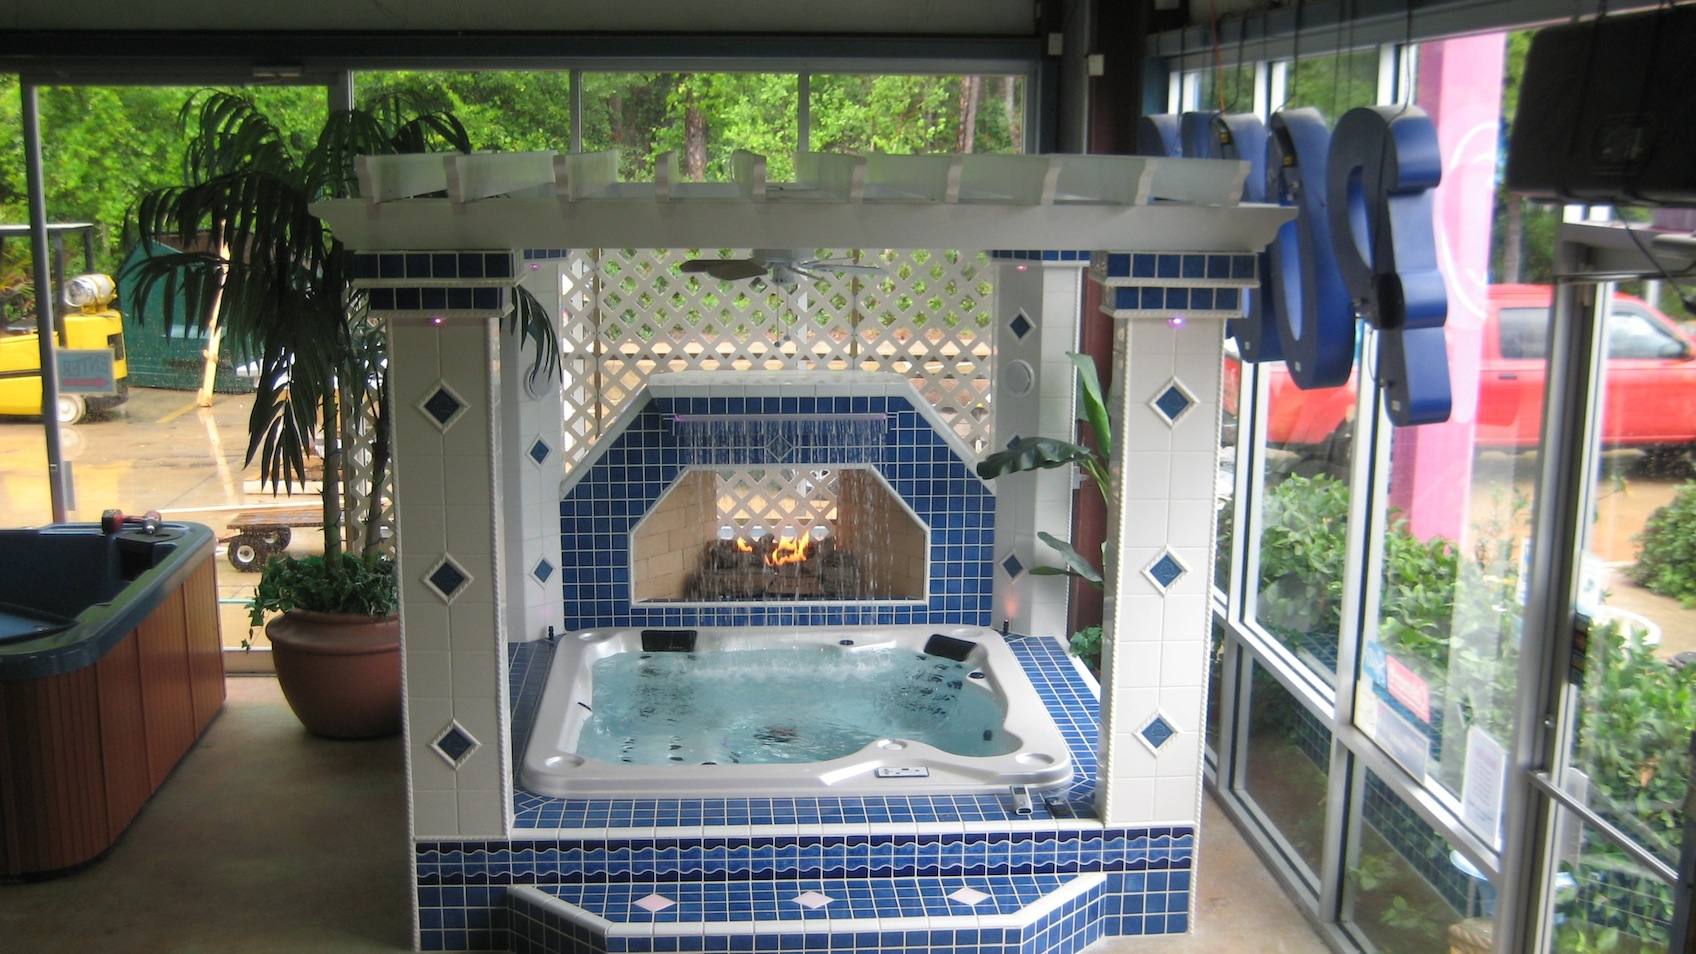 atlantic coast spas showroom, Jacksonville